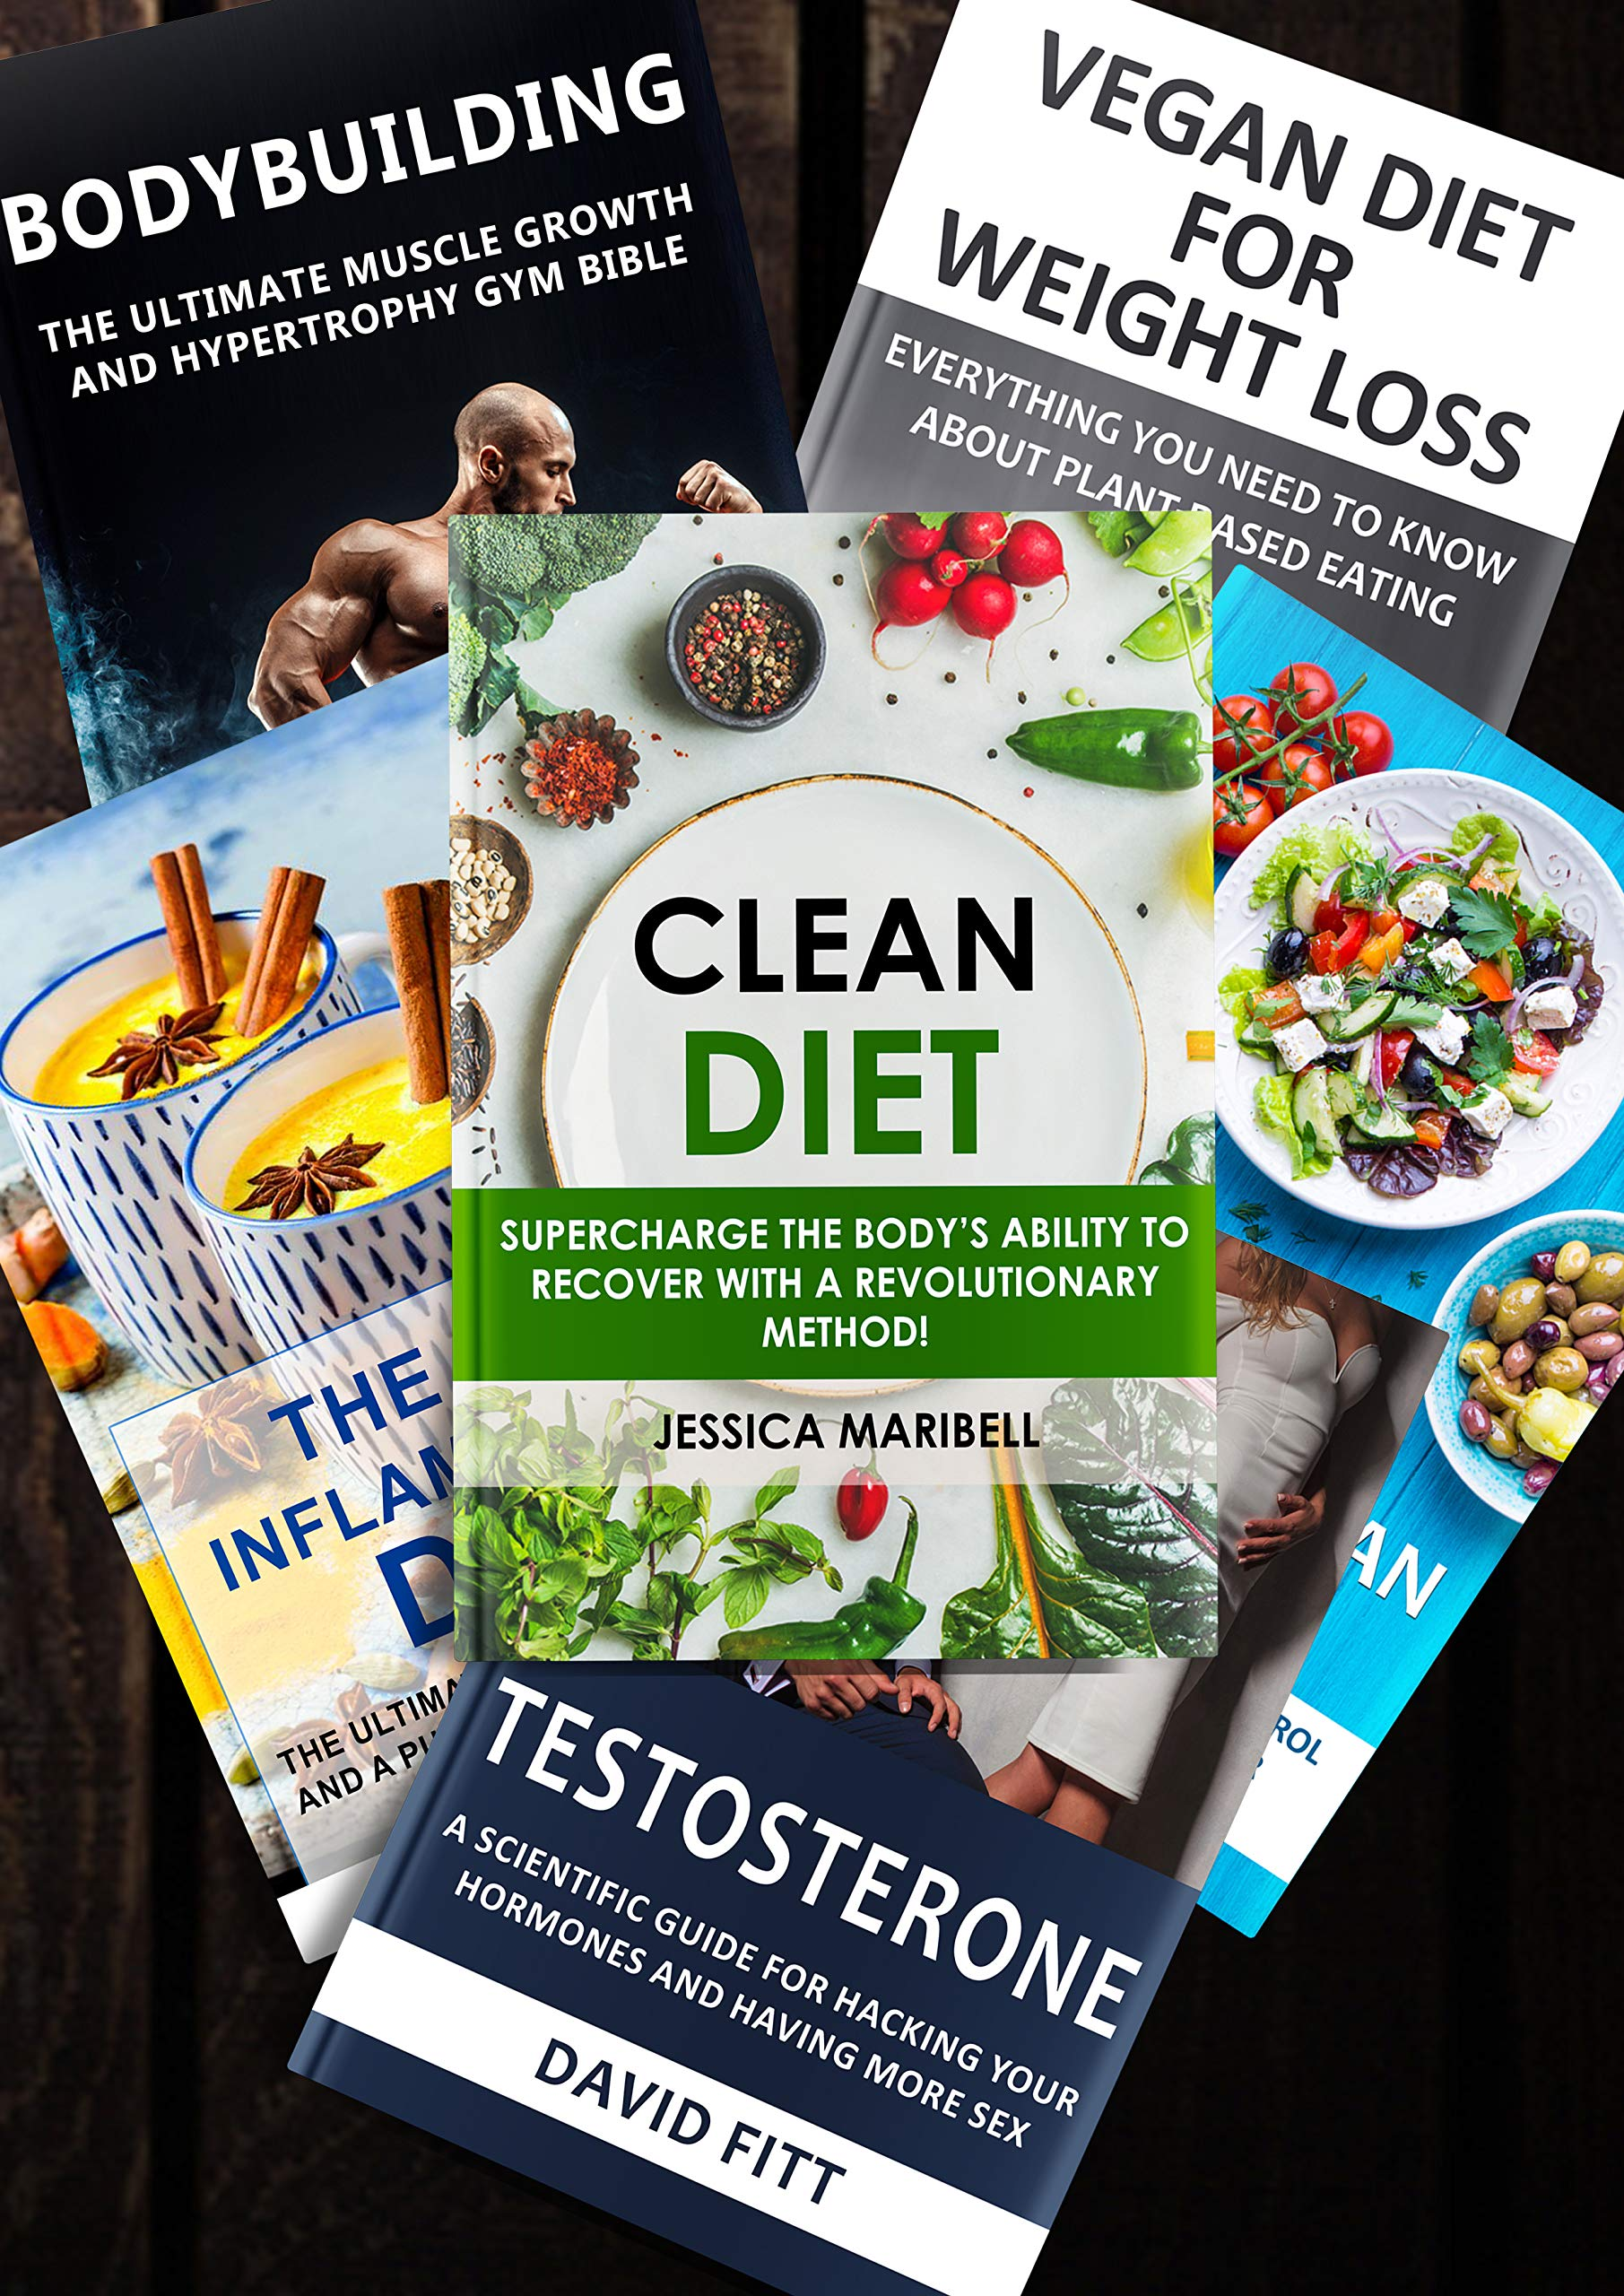 How Not To Diet: 6 Books in 1, The Groundbreaking Science of Healthy, Permanent Weight Loss With Bodybuilding Strategies